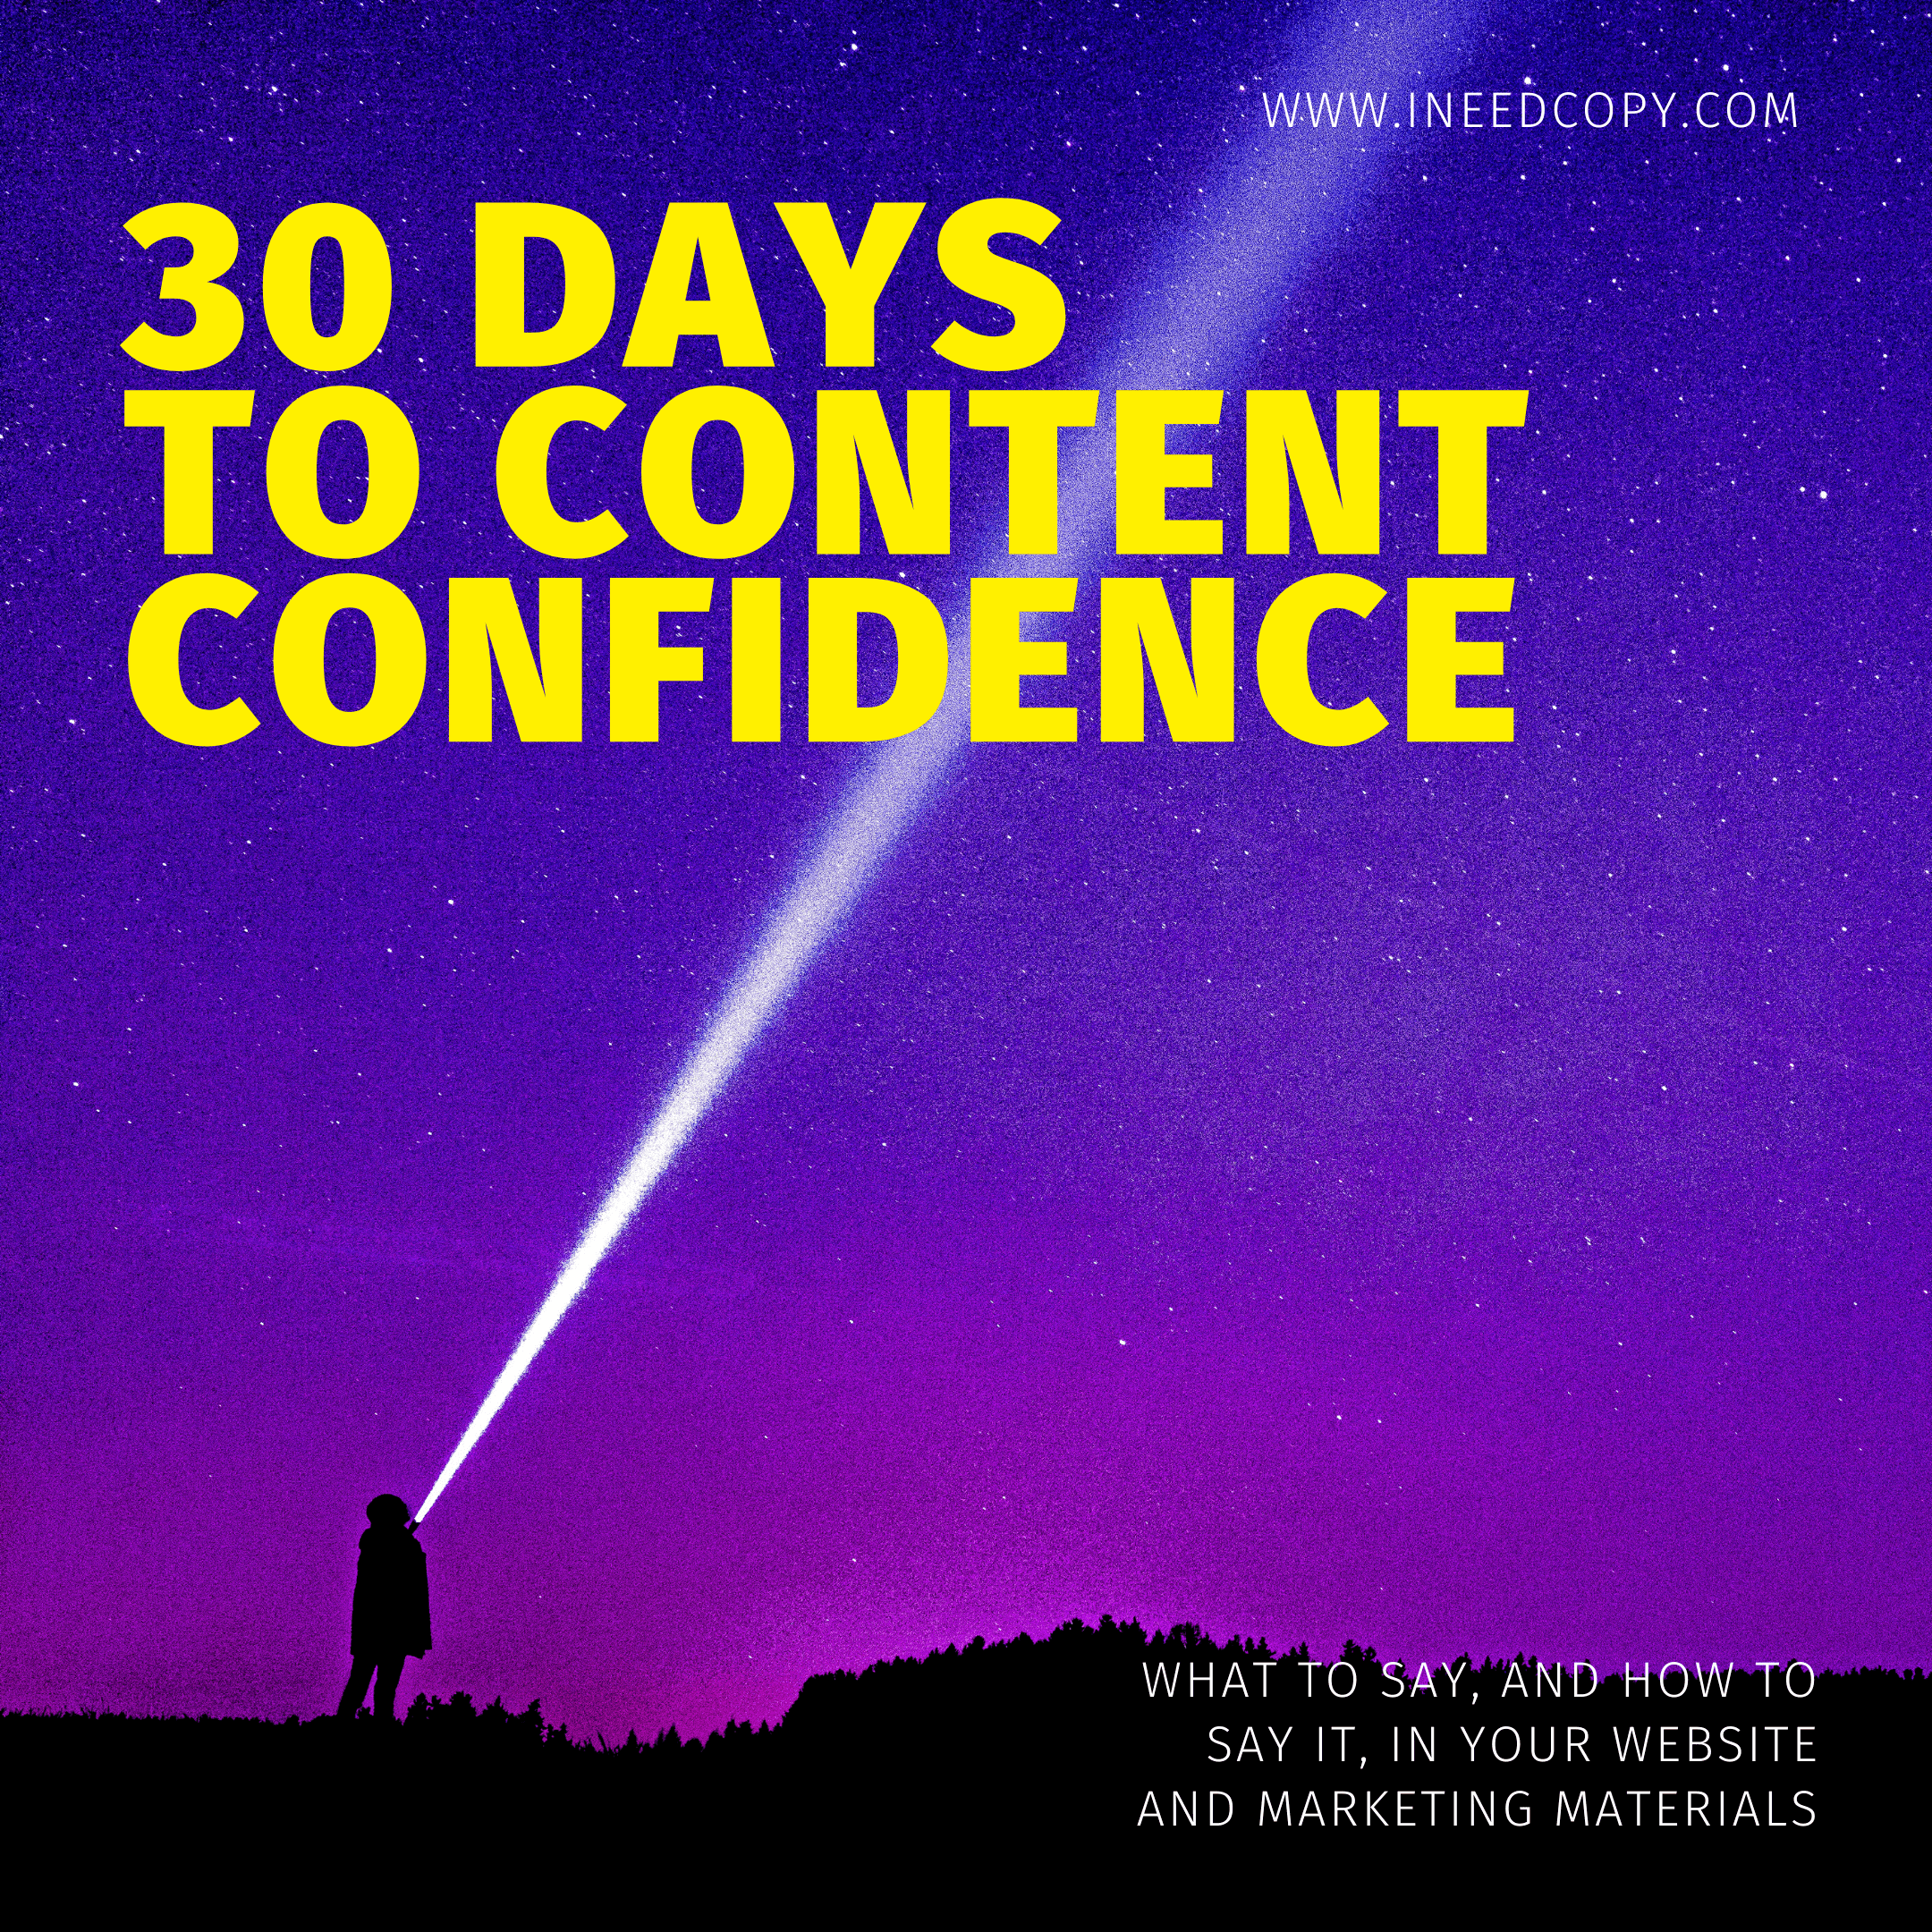 30 Days to Content Confidence